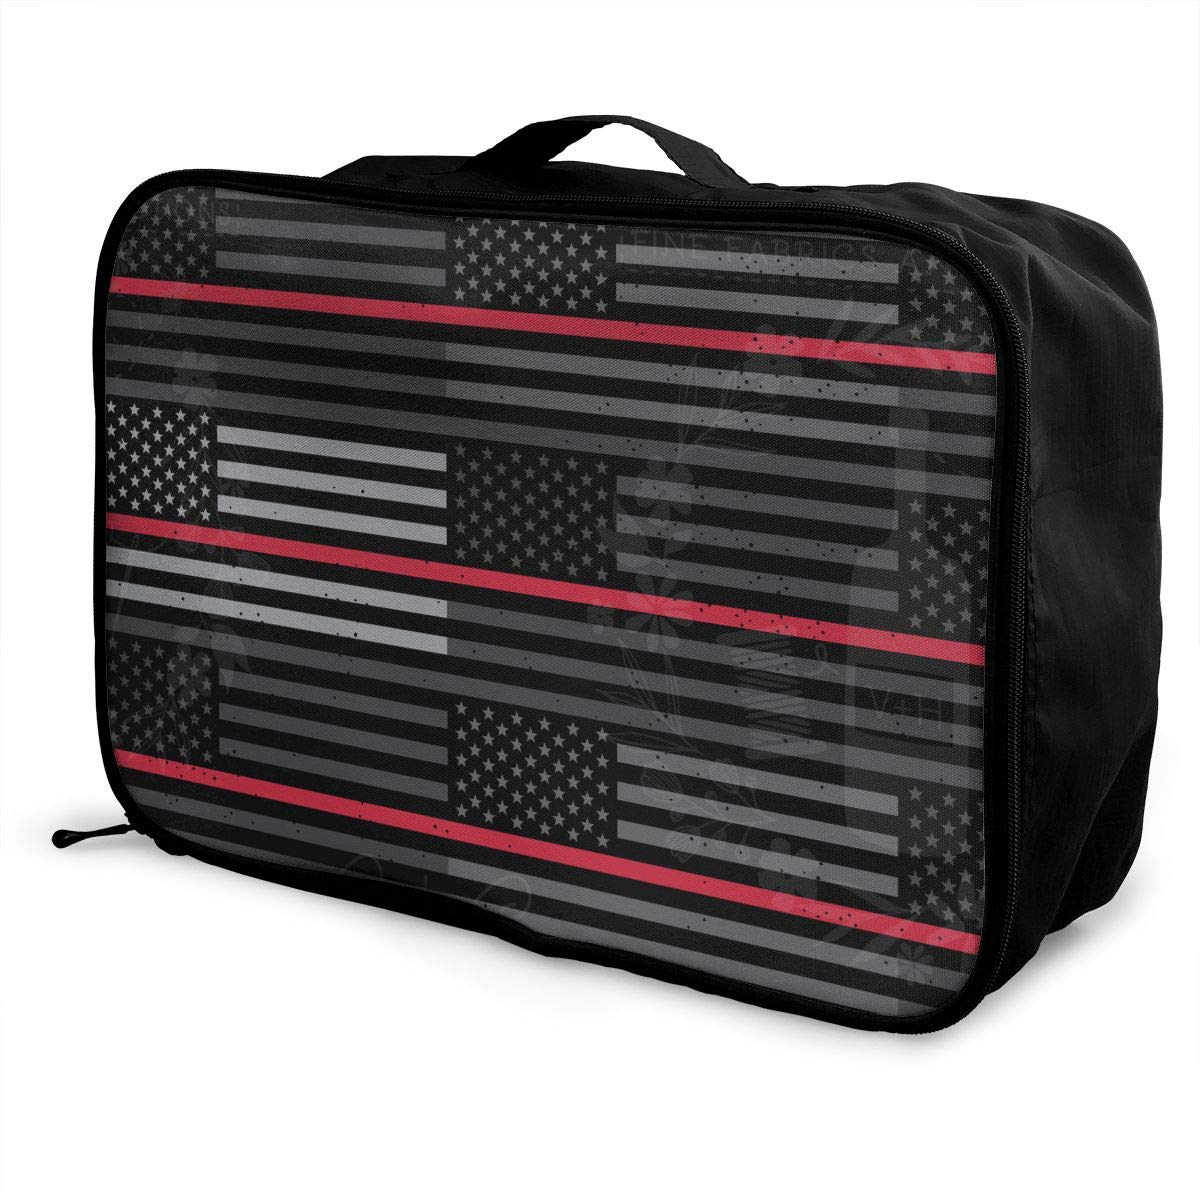 YueLJB Thin Red Line Flag Lightweight Large Capacity Portable Luggage Bag Travel Duffel Bag Storage Carry Luggage Duffle Tote Bag